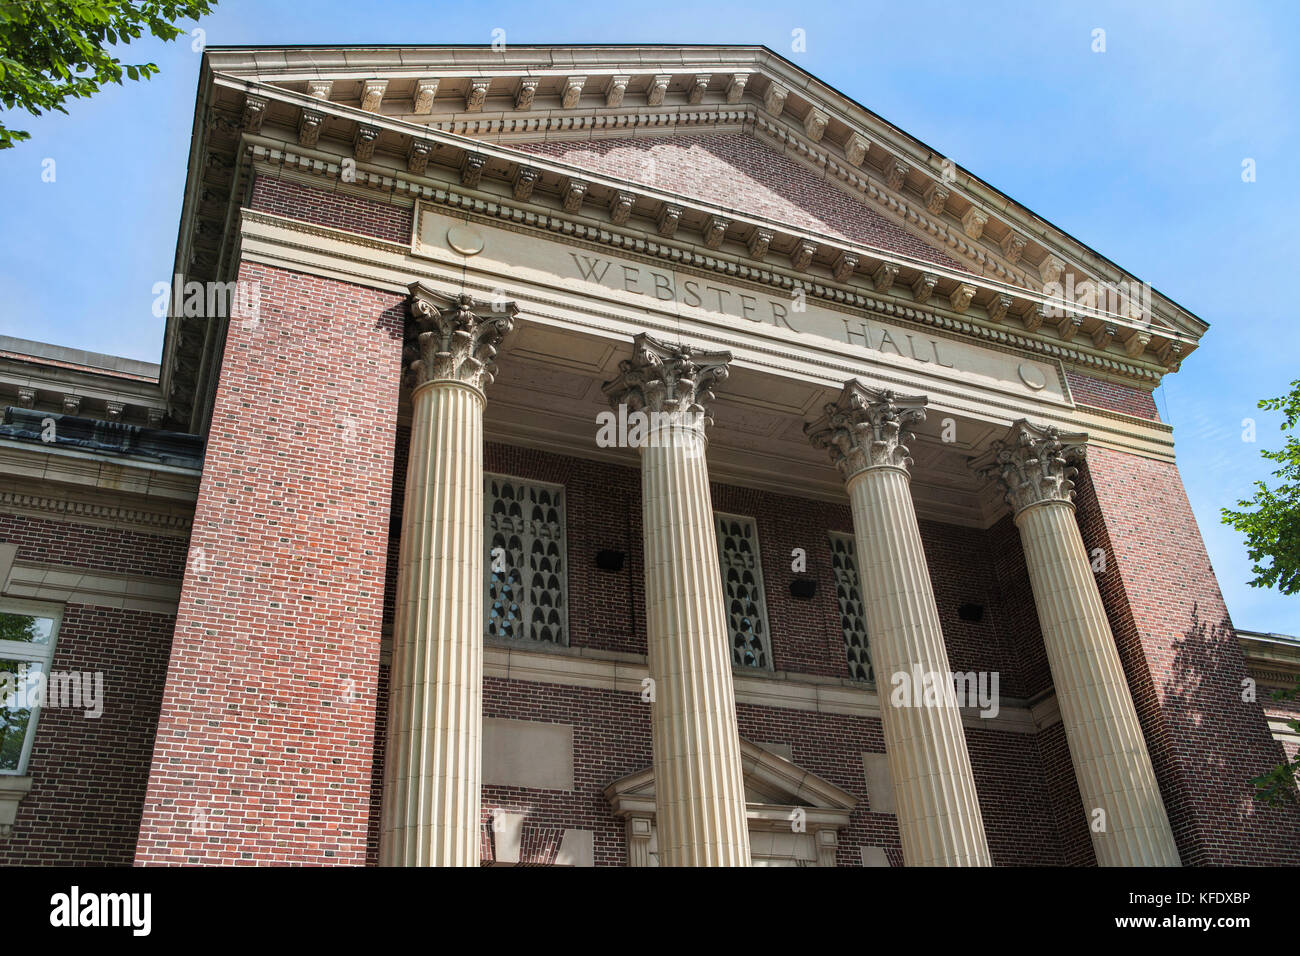 Webster Hall Rauner Library, Dartmouth College, Hanover, New Hampshire Stock Photo